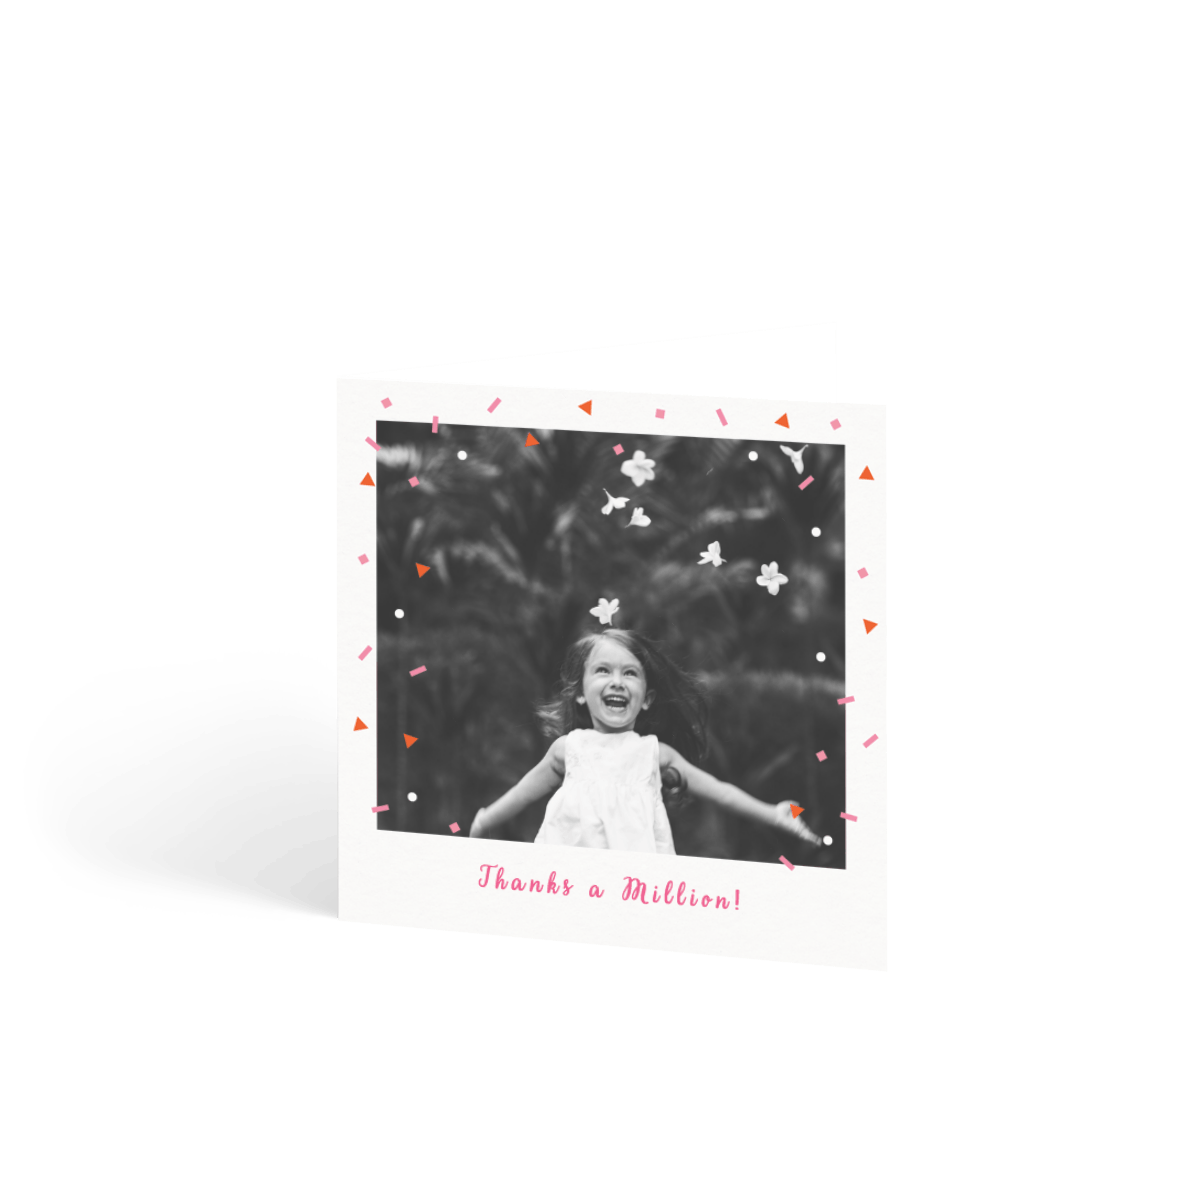 Https%3a%2f%2fwww.papier.com%2fproduct image%2f26131%2f16%2ffalling red confetti 6540 front 1534764781.png?ixlib=rb 1.1